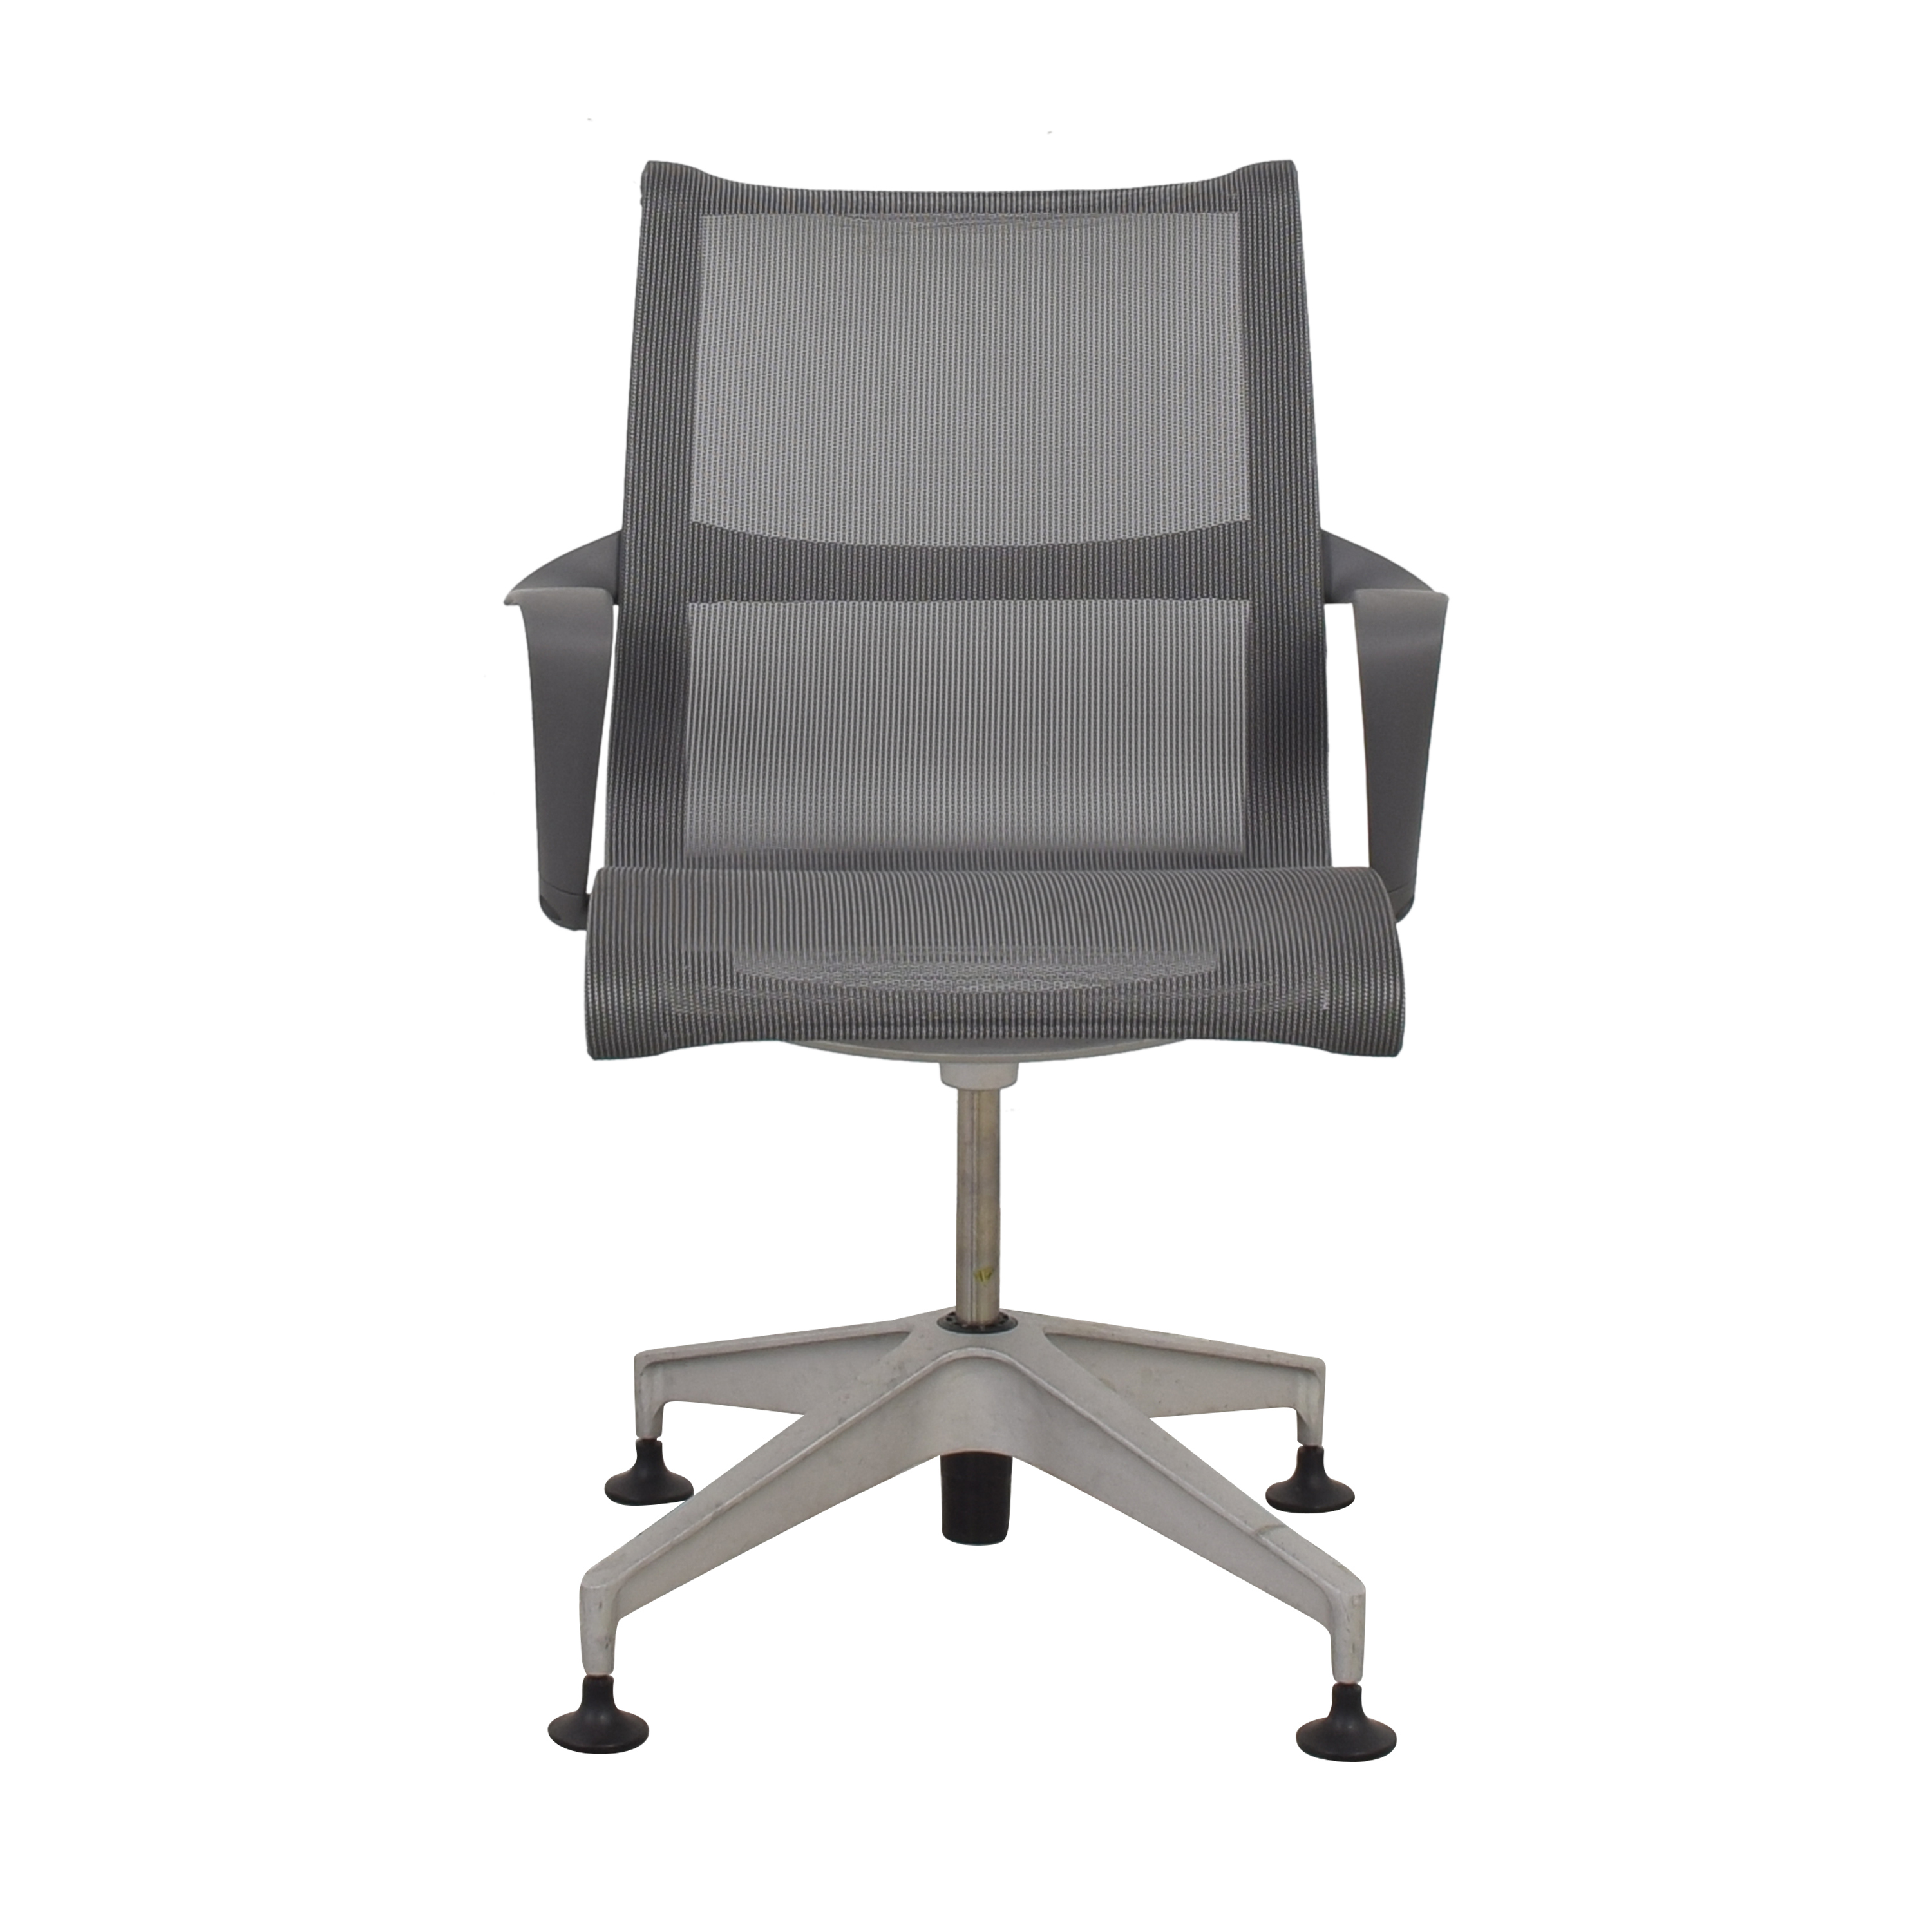 Herman Miller Herman Miller Setu Chair second hand